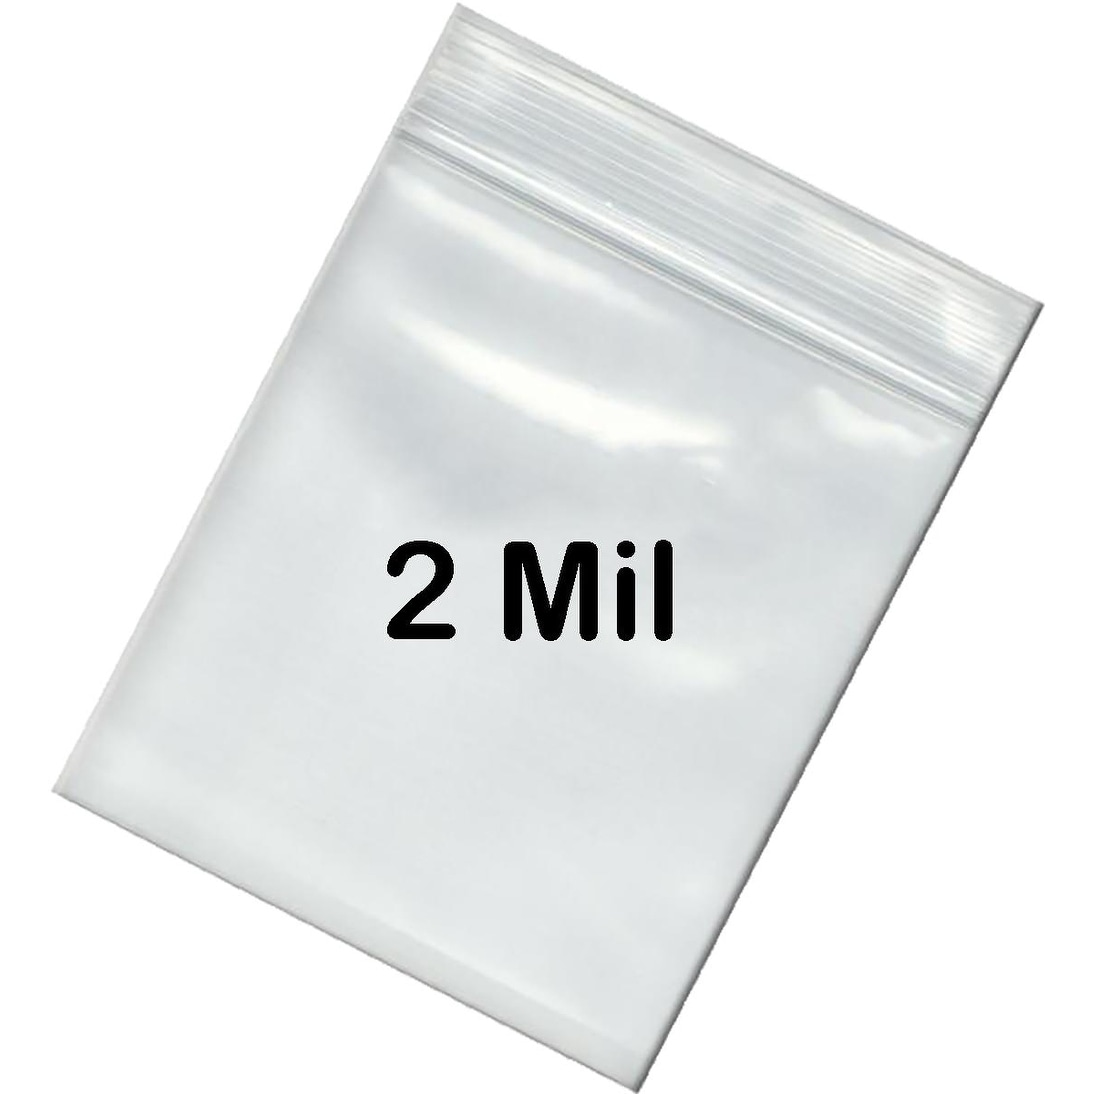 2 Mil Reclosable Bag with White Block 2 x 3 Quality Plastic Bags Clear 2000 Pieces